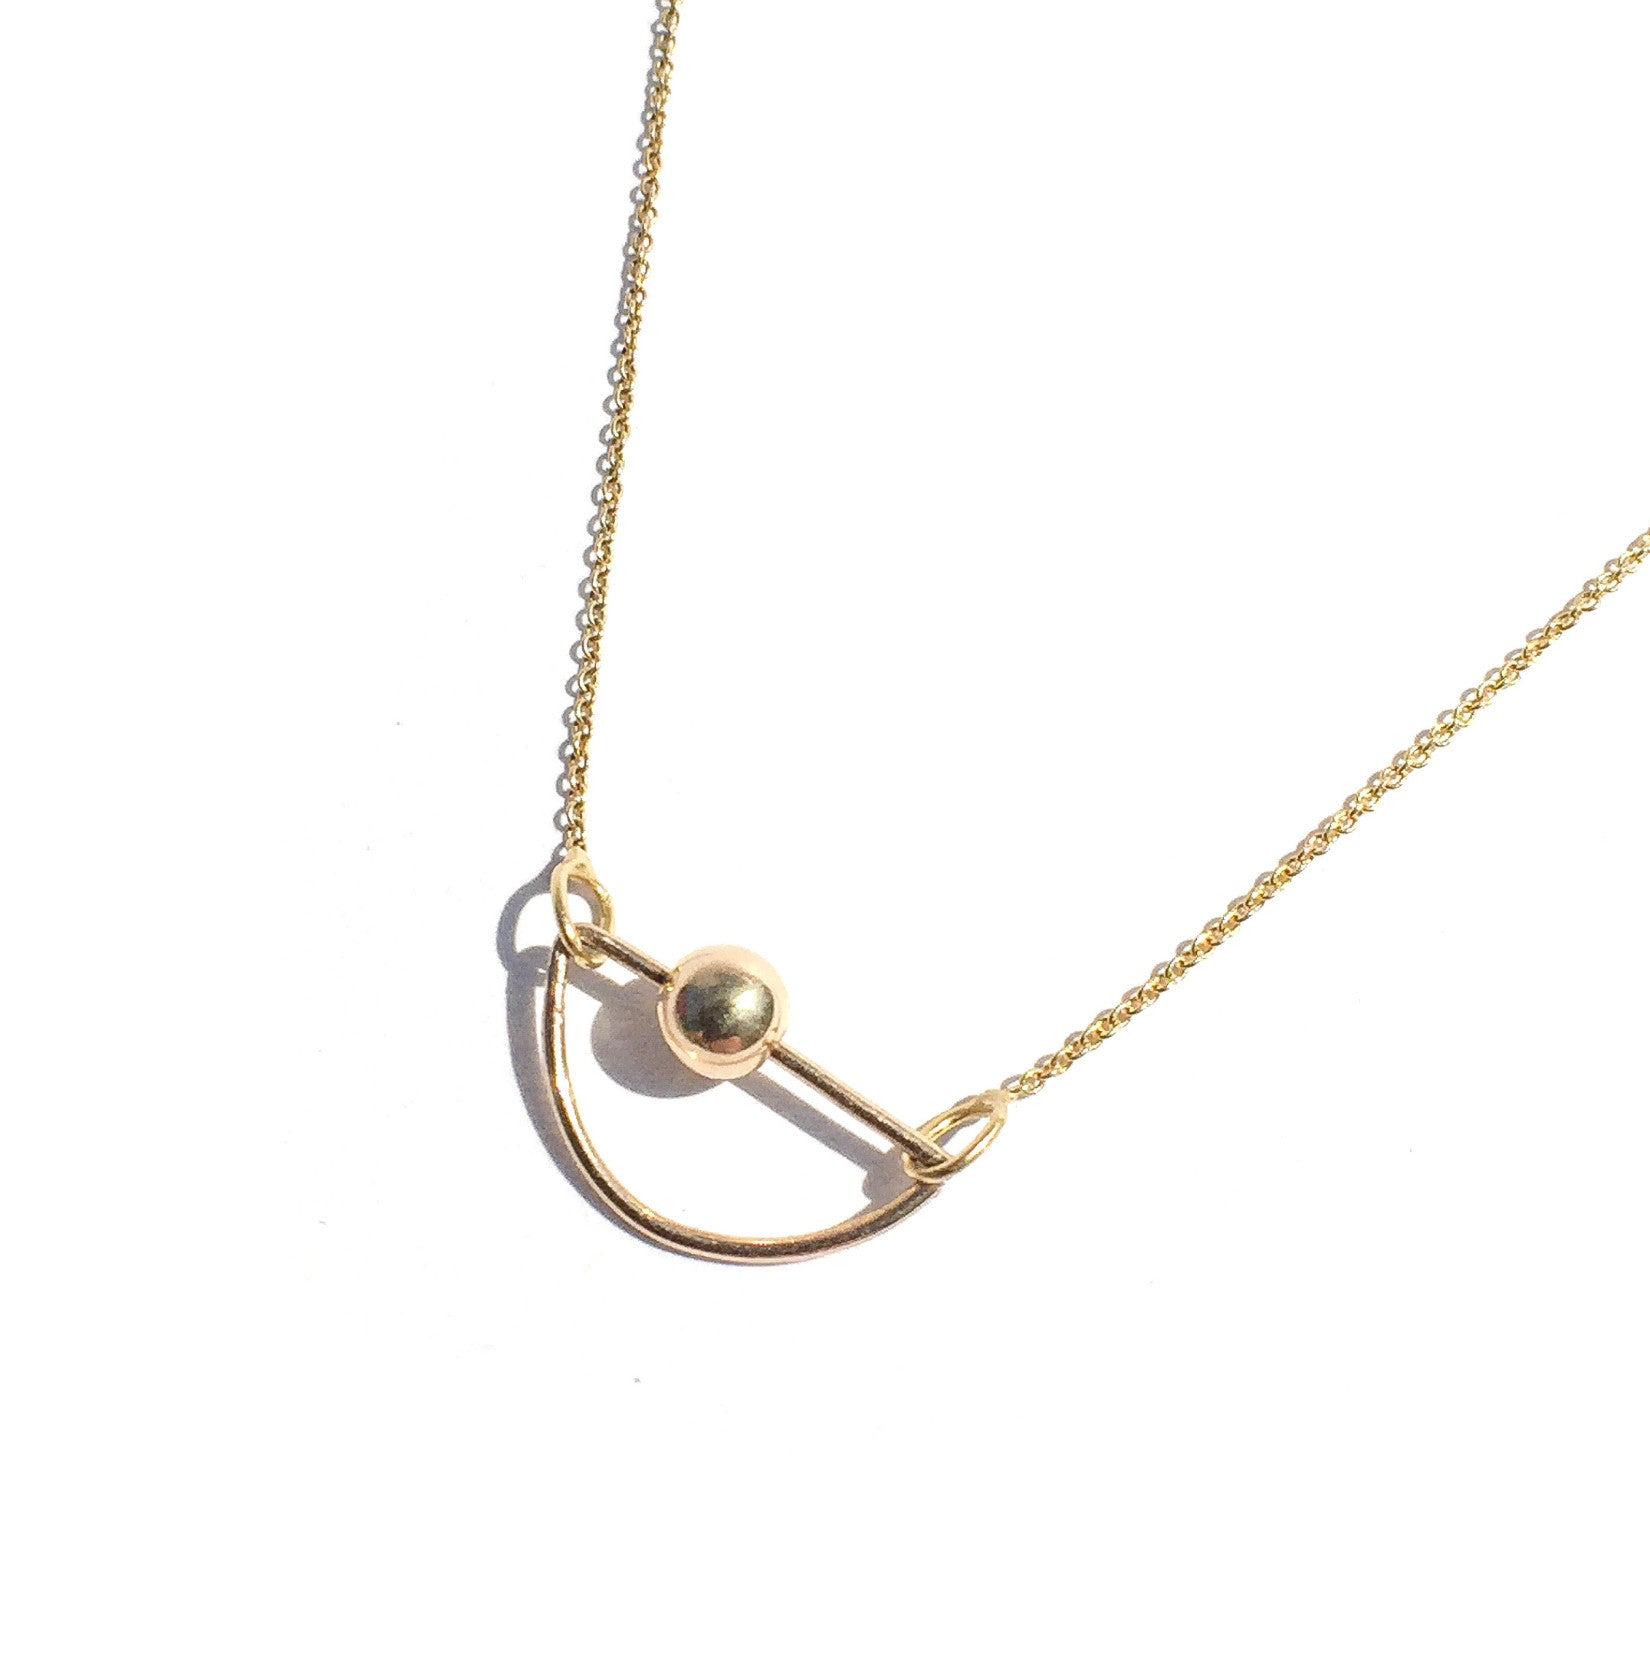 ARTEMIS NECKLACE / GOLD